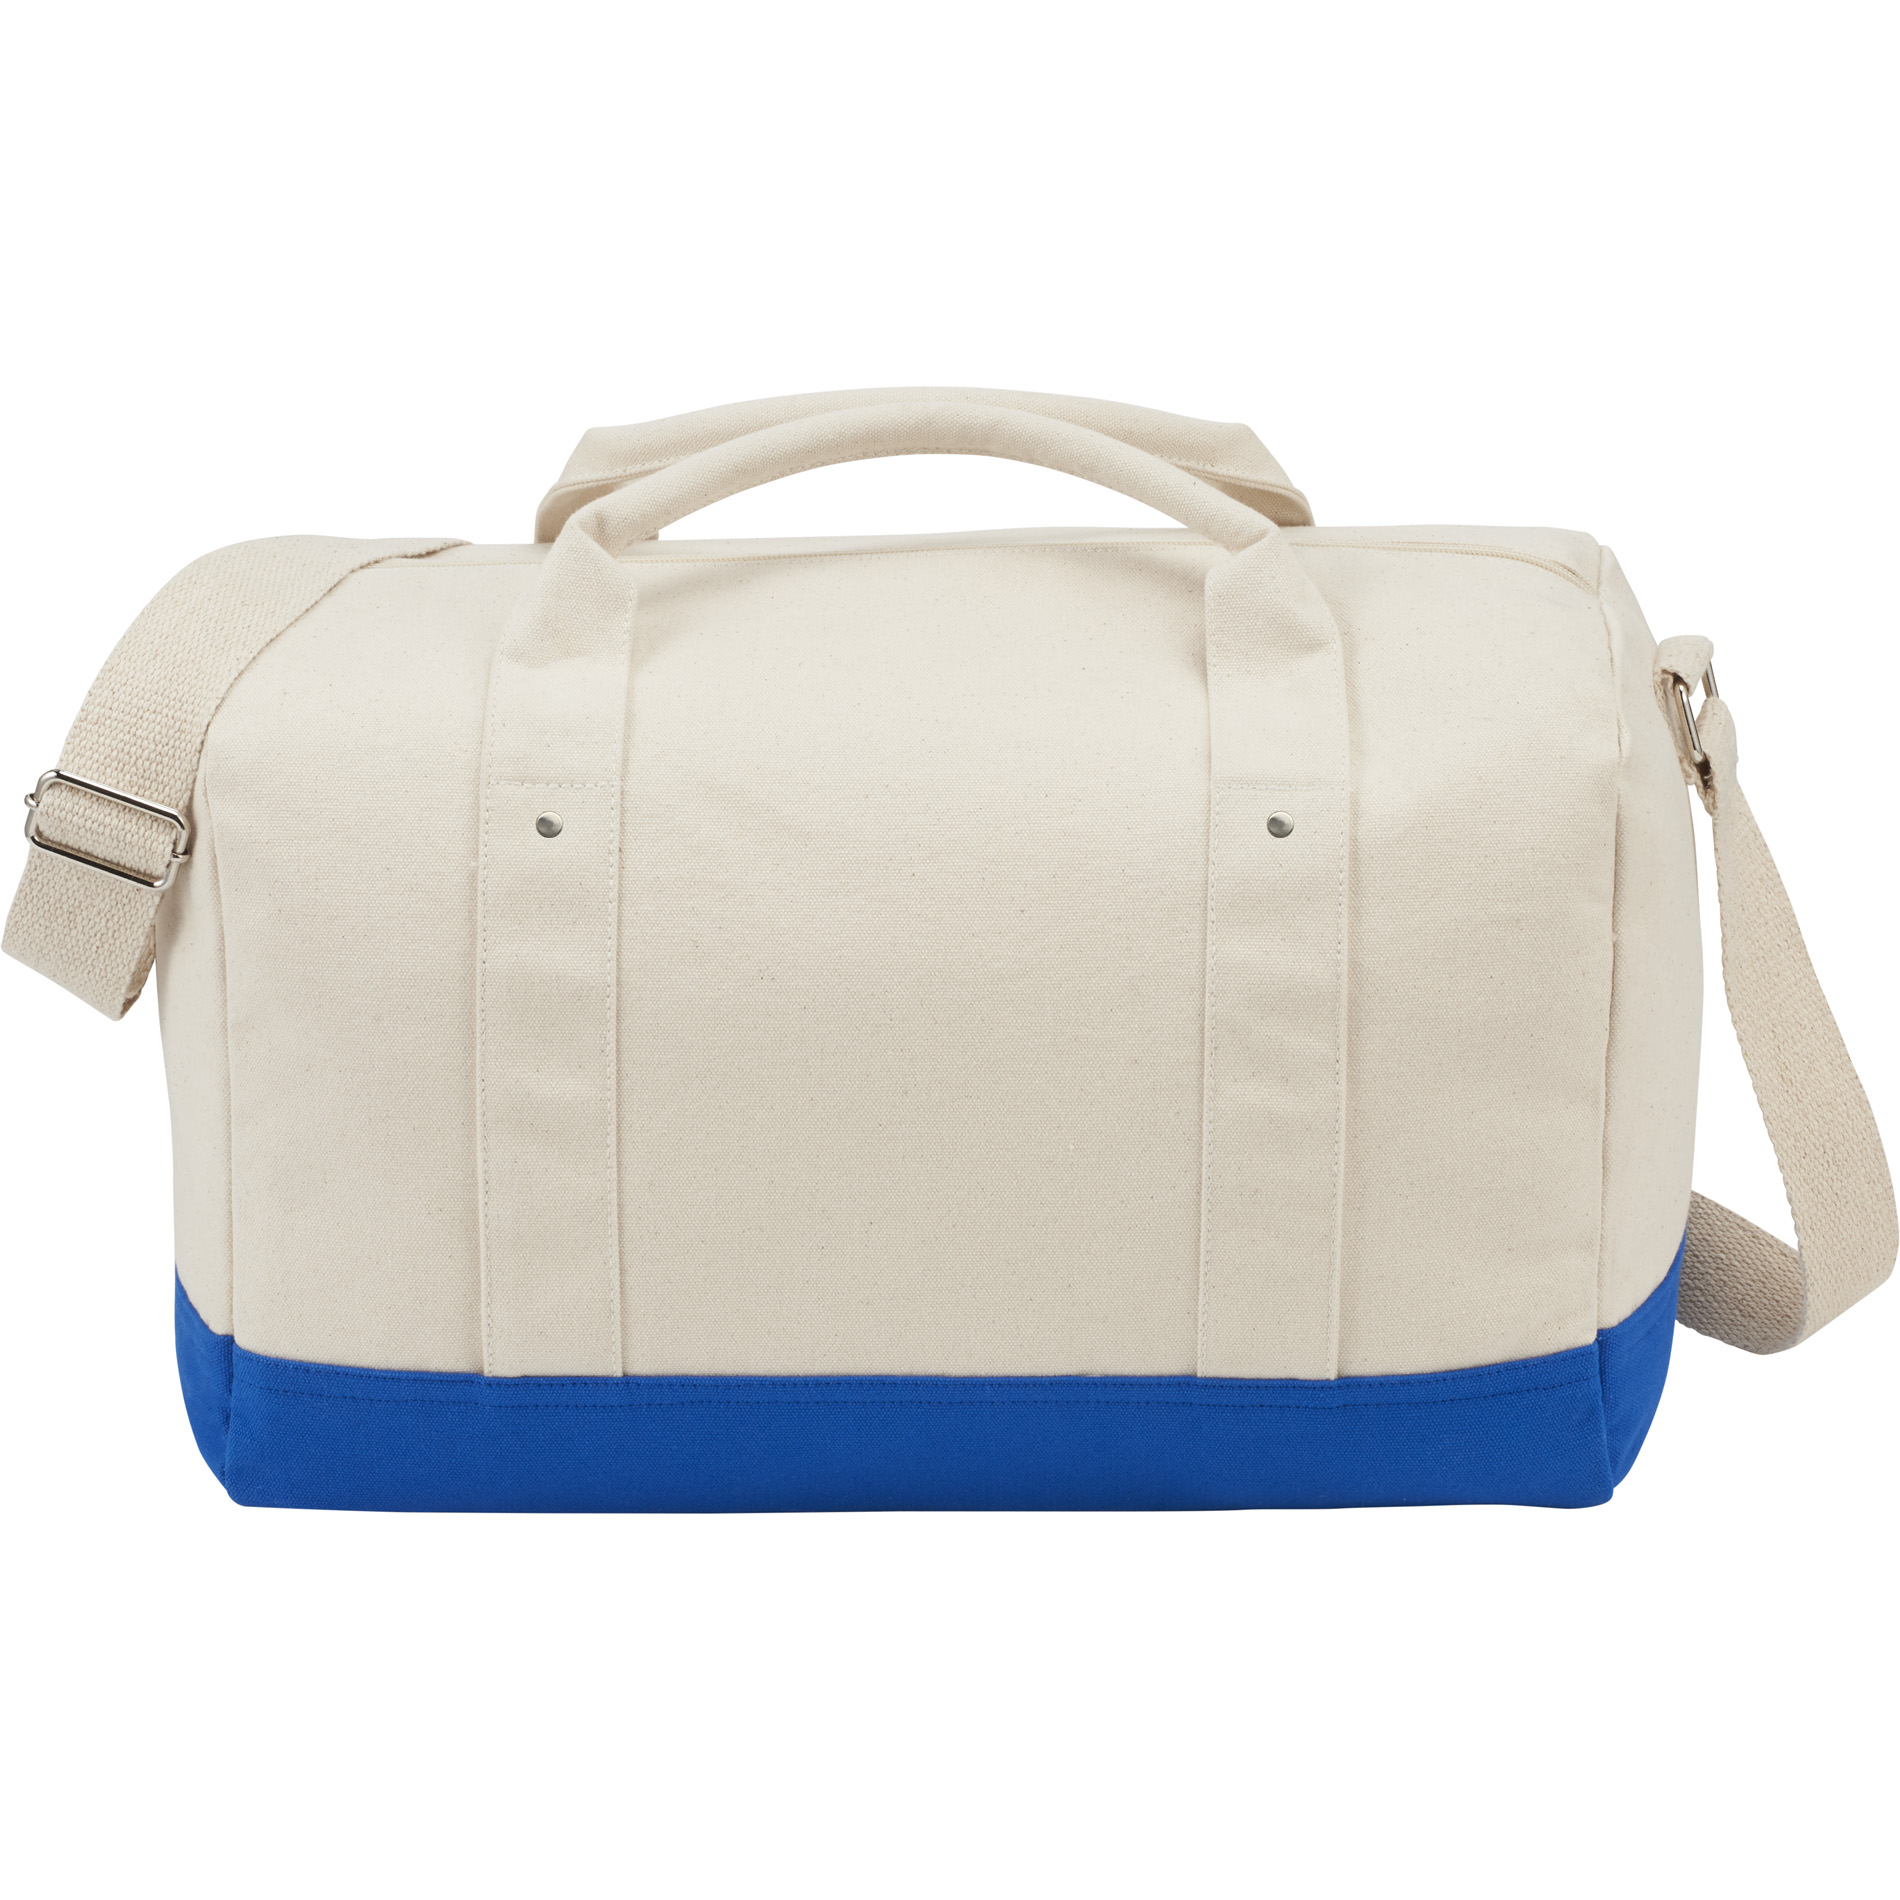 "LEEDS 3450-69 - Belair 17"" Cotton Canvas Duffel"